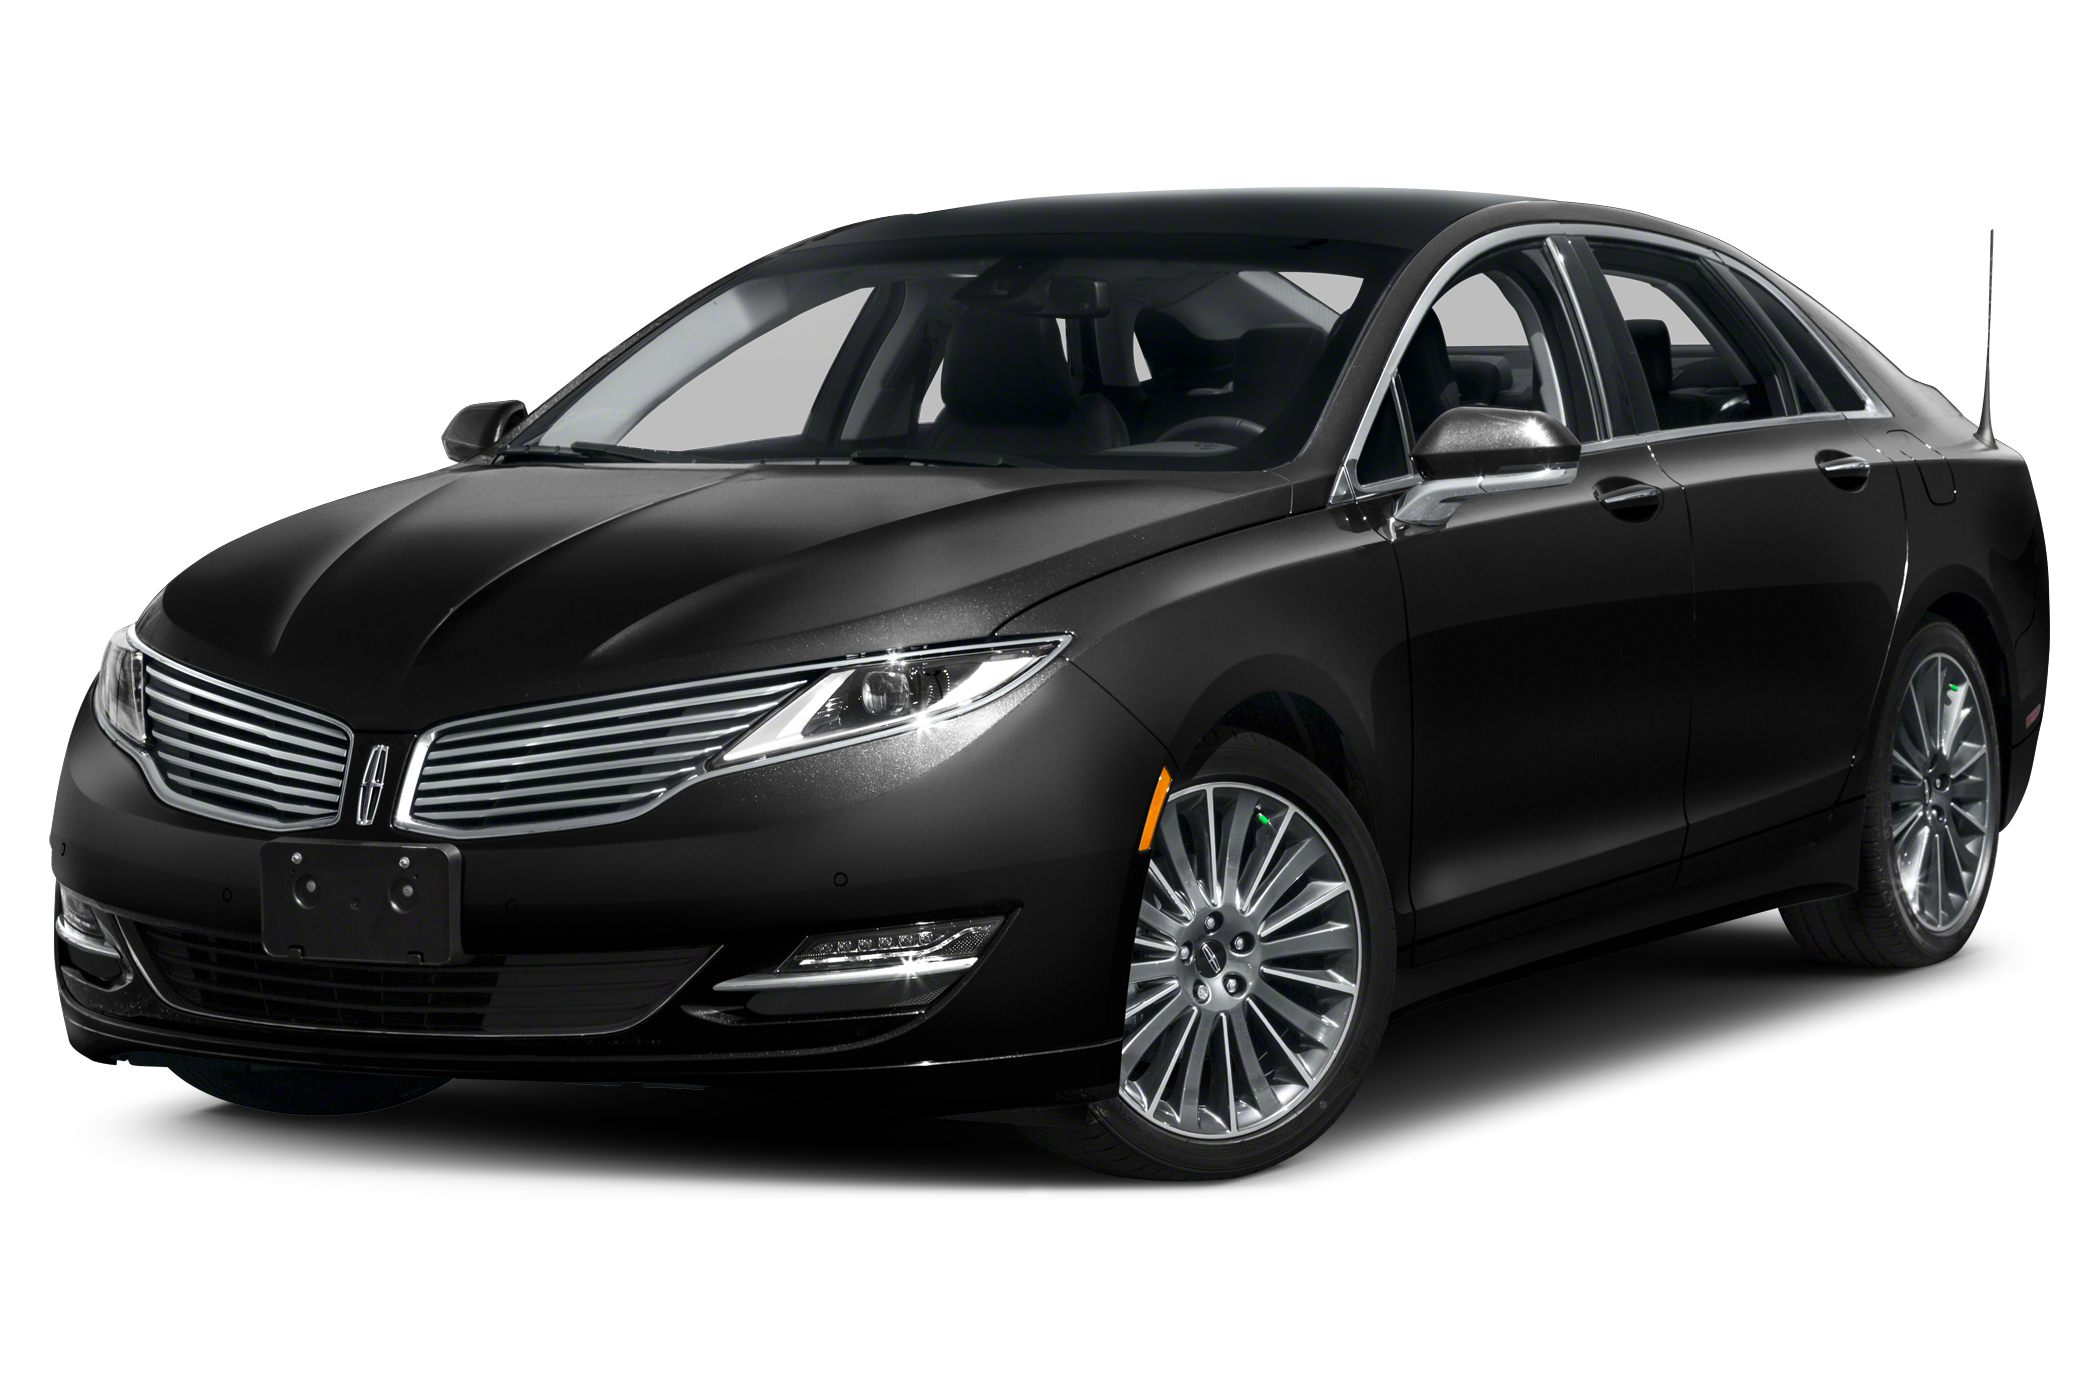 2015 Lincoln MKZ Hybrid Base This 2015 Lincoln MKZ 4dr 4dr Sedan Hybrid FWD features a 20L 4 CYLI